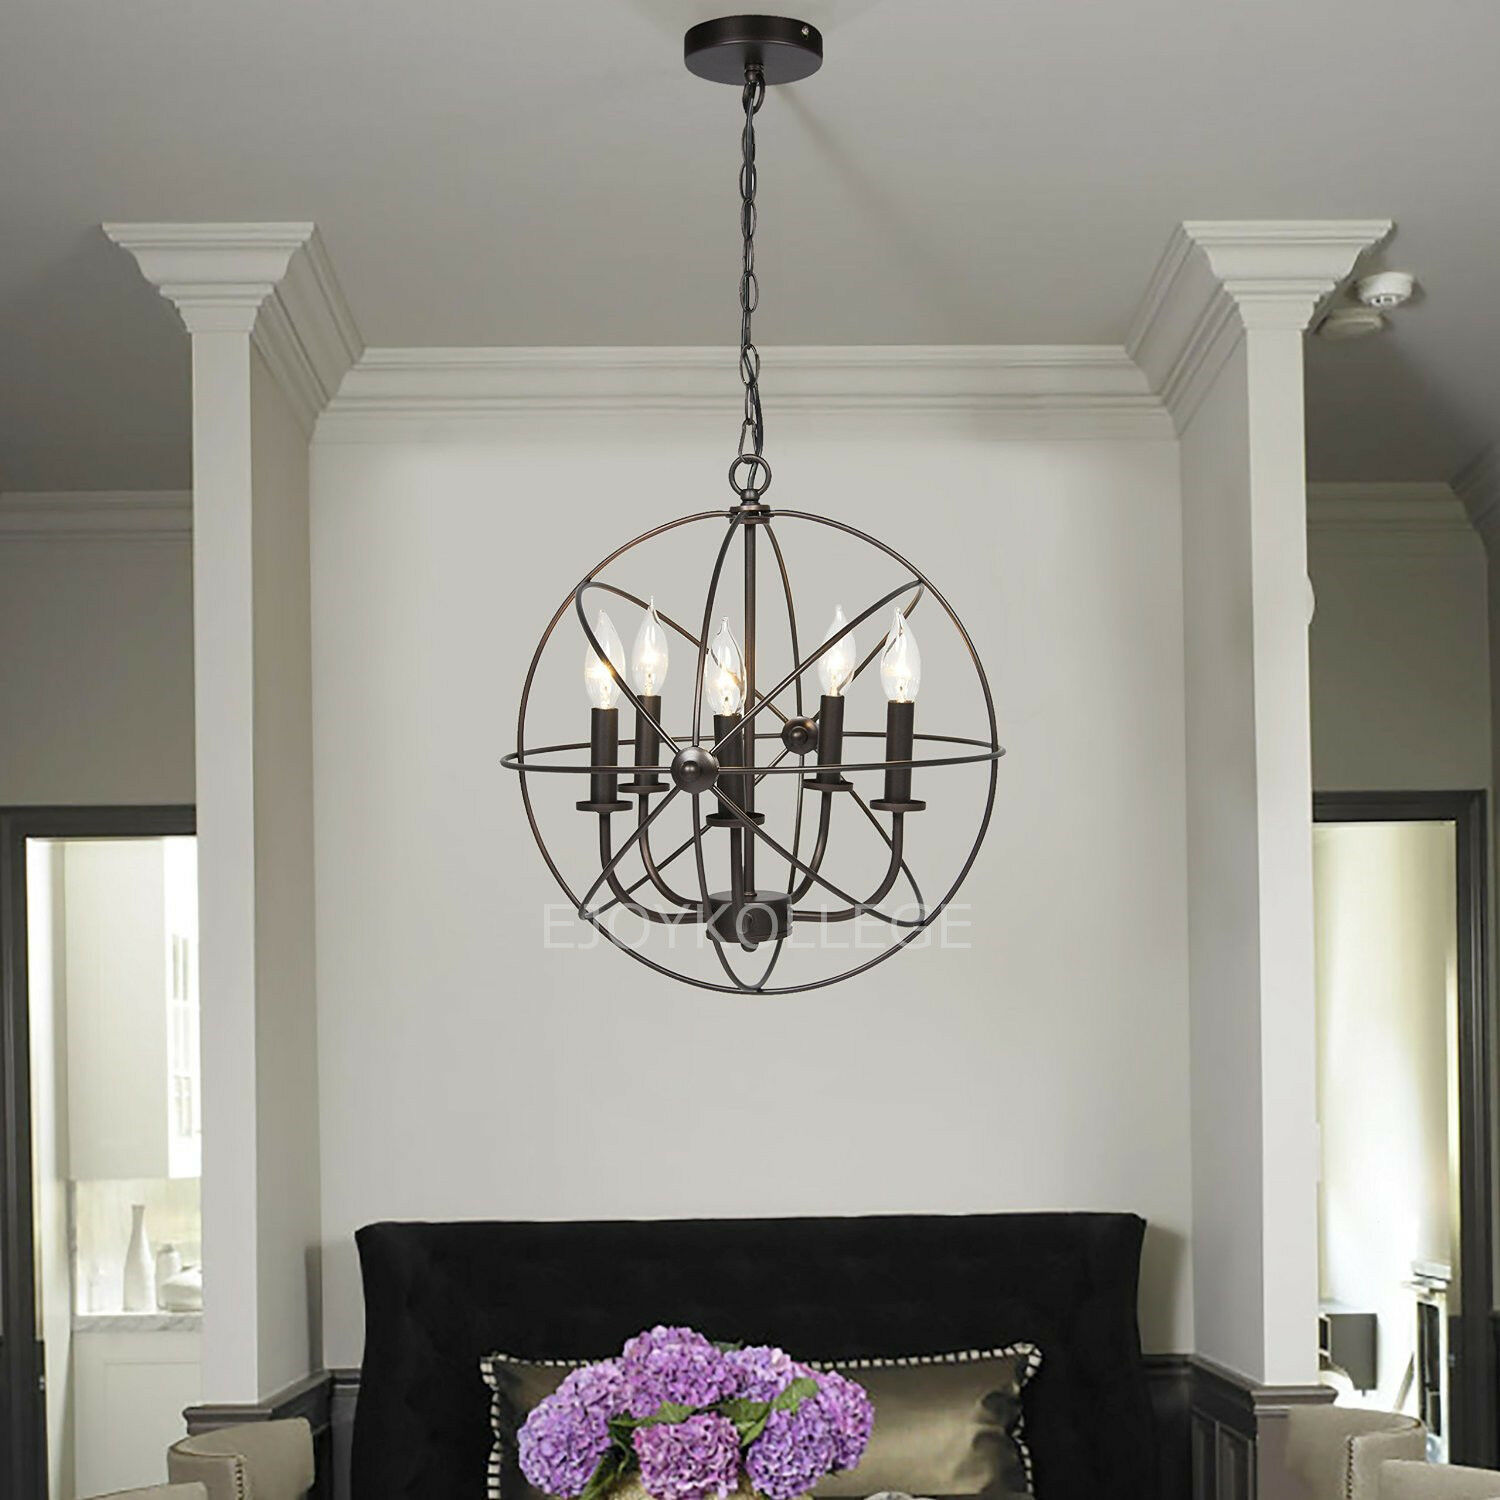 Round Ball Chandelier Retro Industrial Candle Hanging